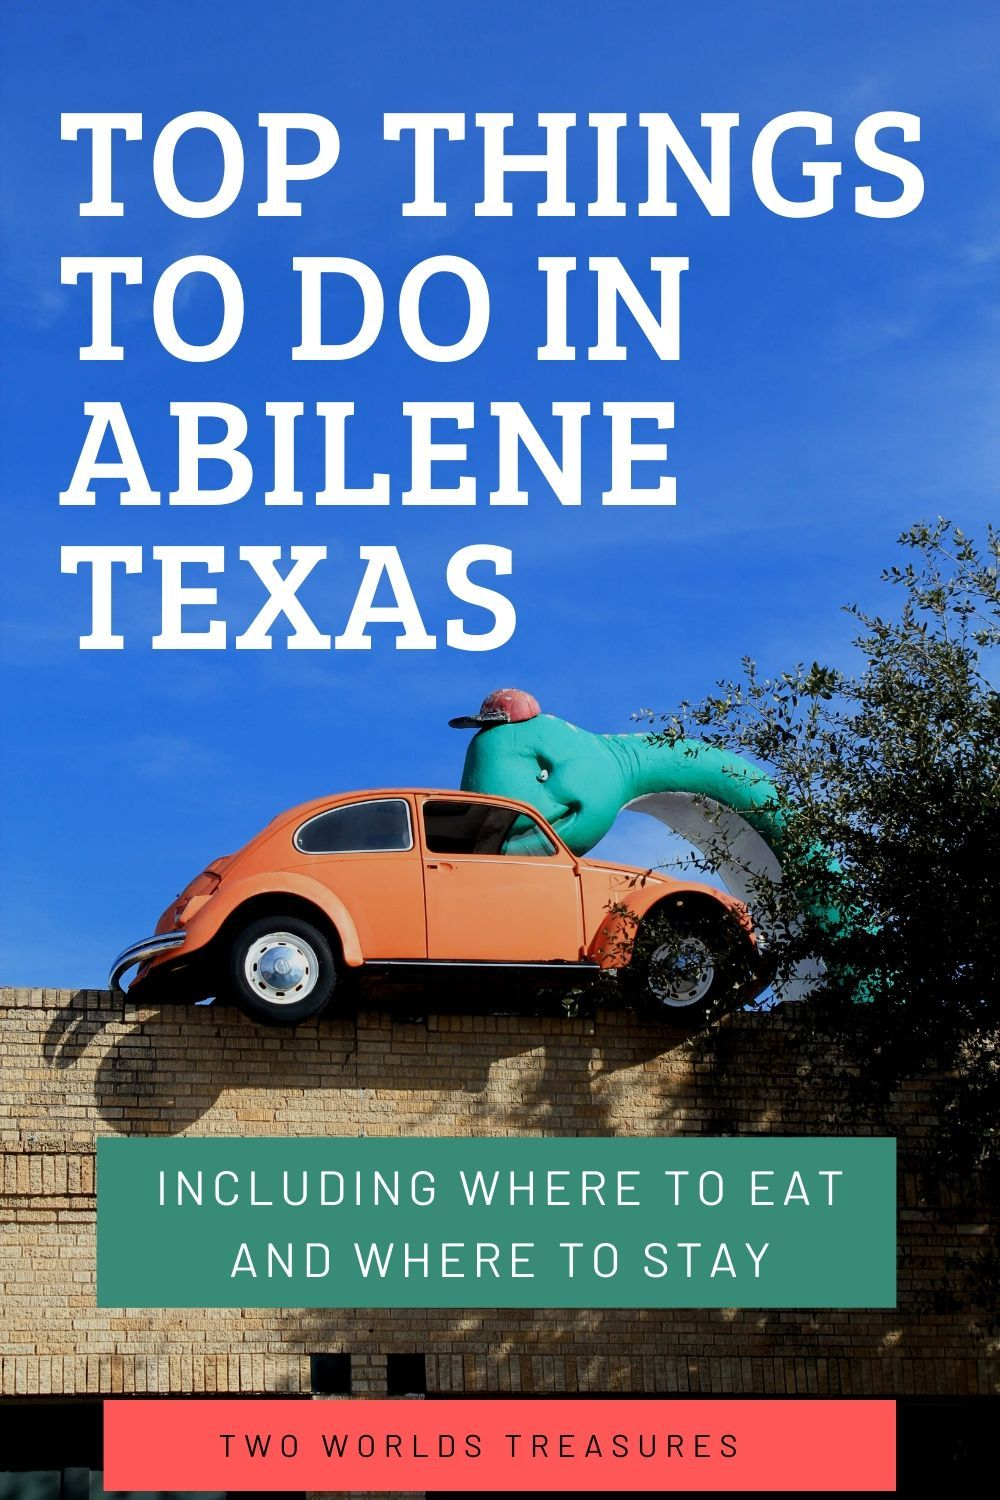 Things To Do In Abilene Texas A Guide For First Time Visitors Two Worlds Treasures In 2020 Abilene Texas Abilene Usa Travel Guide